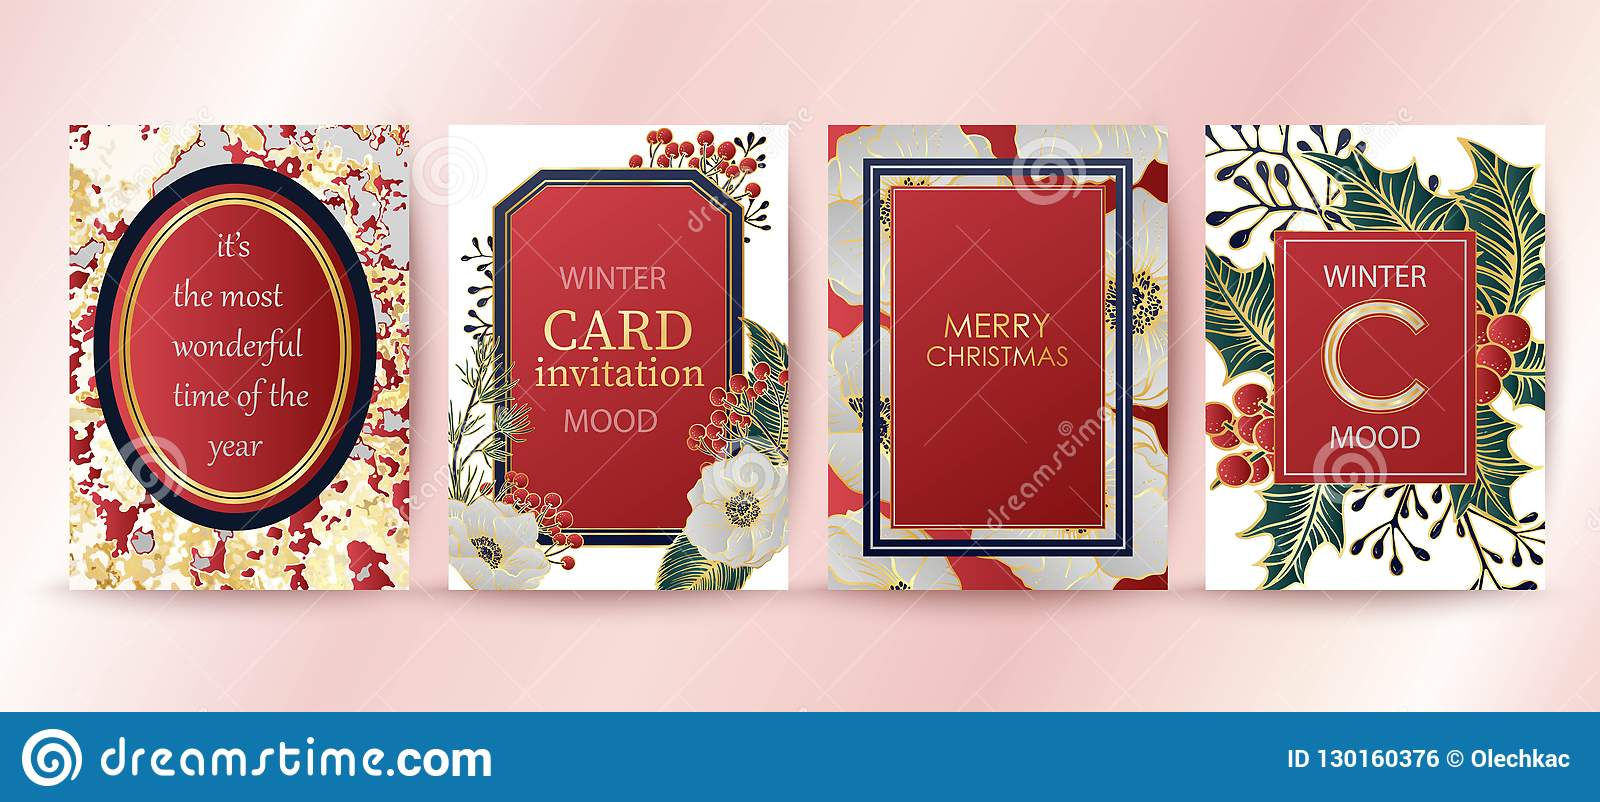 winter holiday background invitation wedding pattern design merry christmas and happy new year